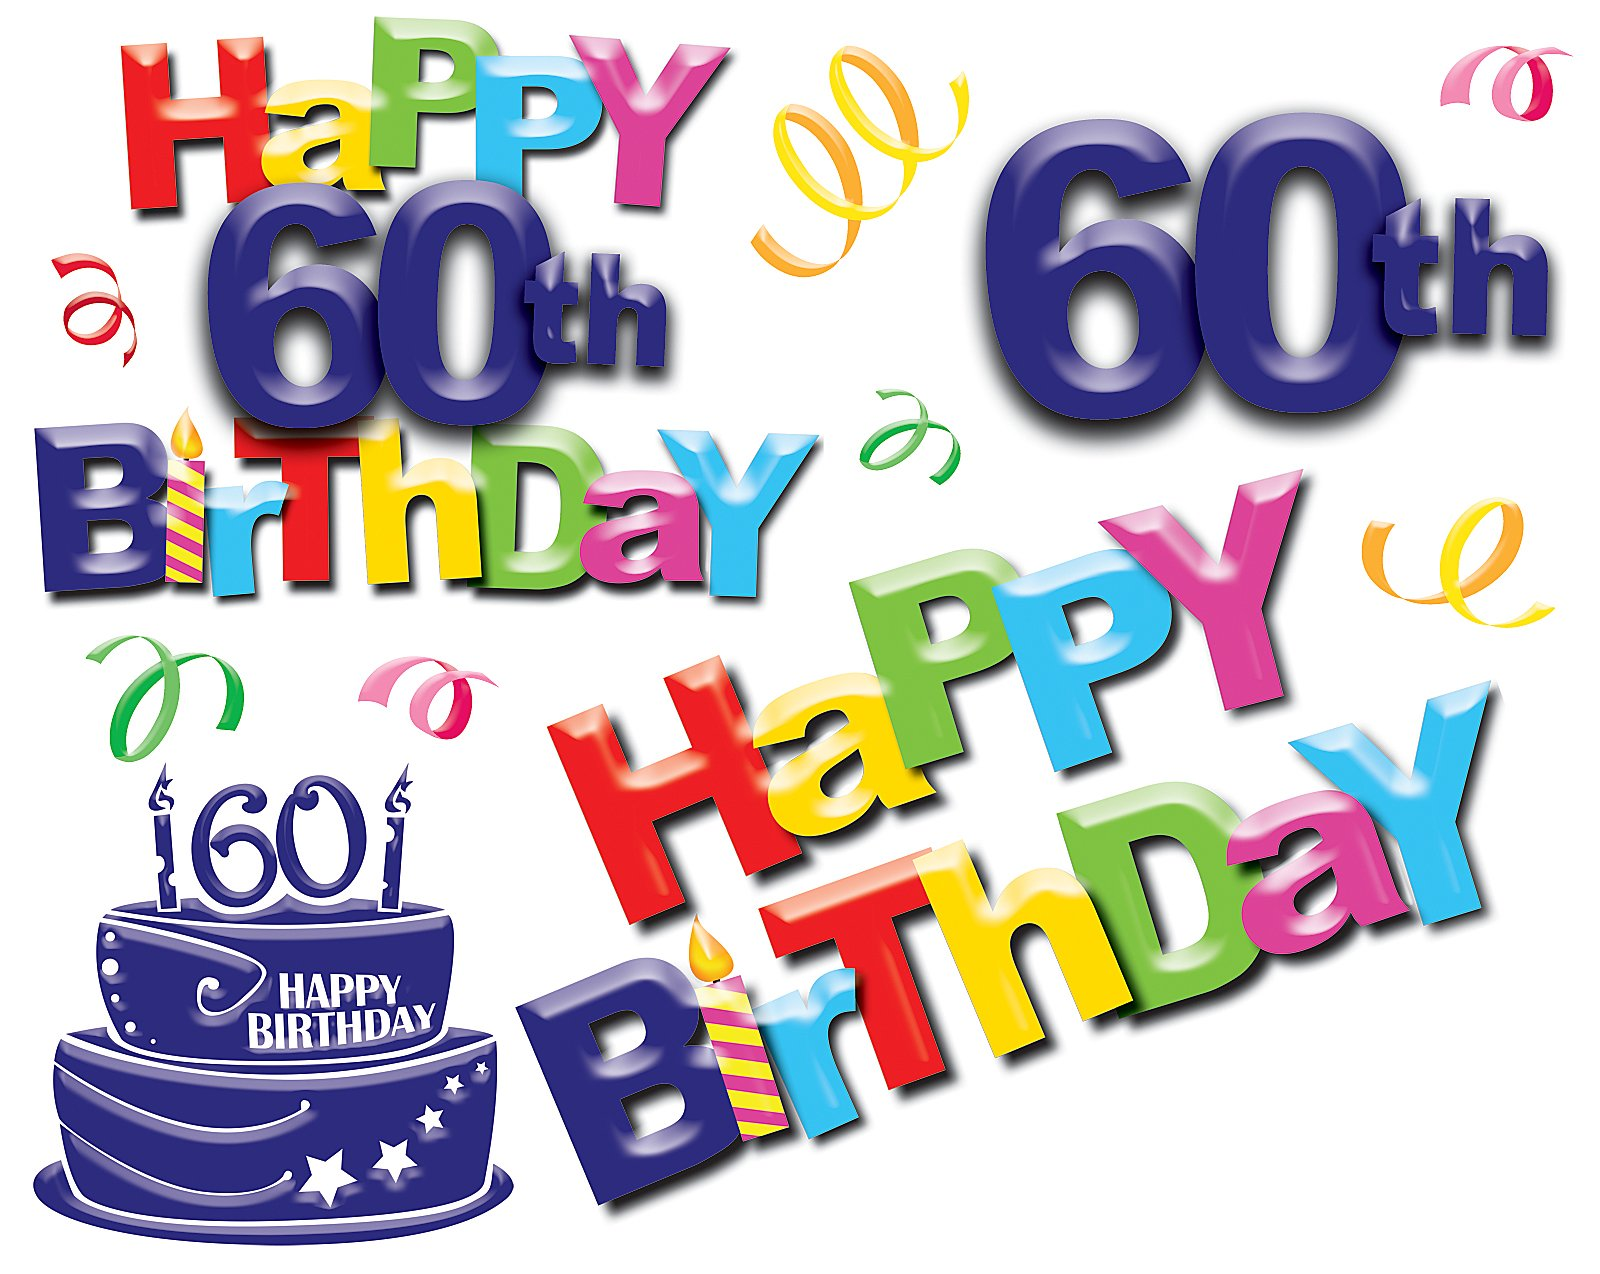 happy 60th birthday clipart clipart suggest 60th birthday clip art free 60th birthday clipart men